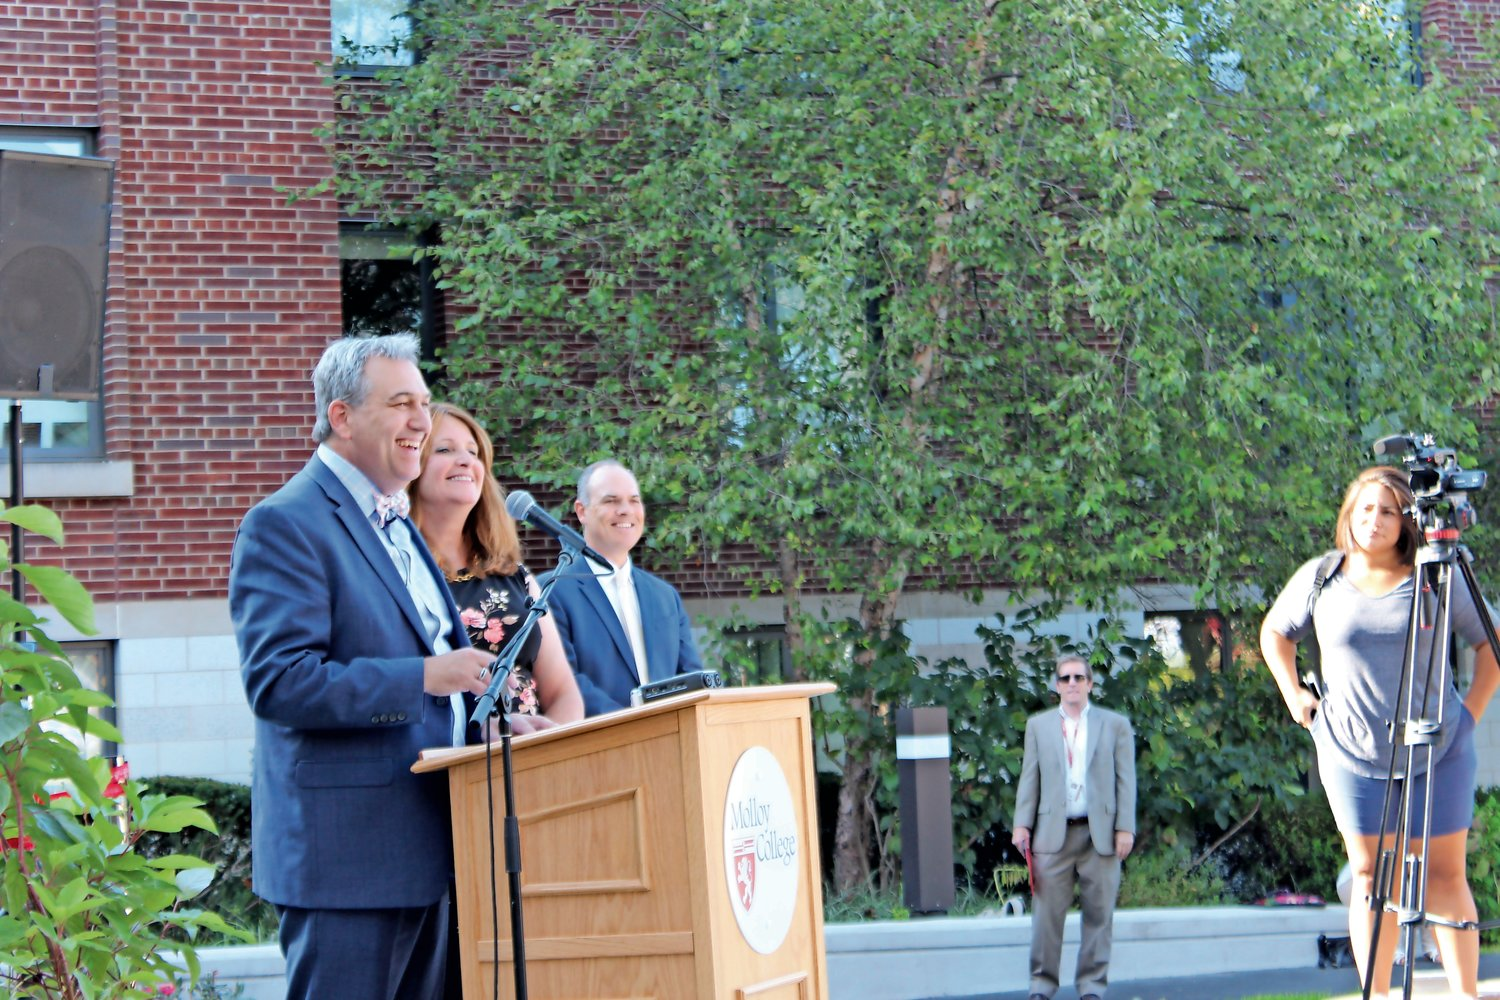 Drew and Karen Bogner thanked their friends, family and the Molloy community for their ongoing support.